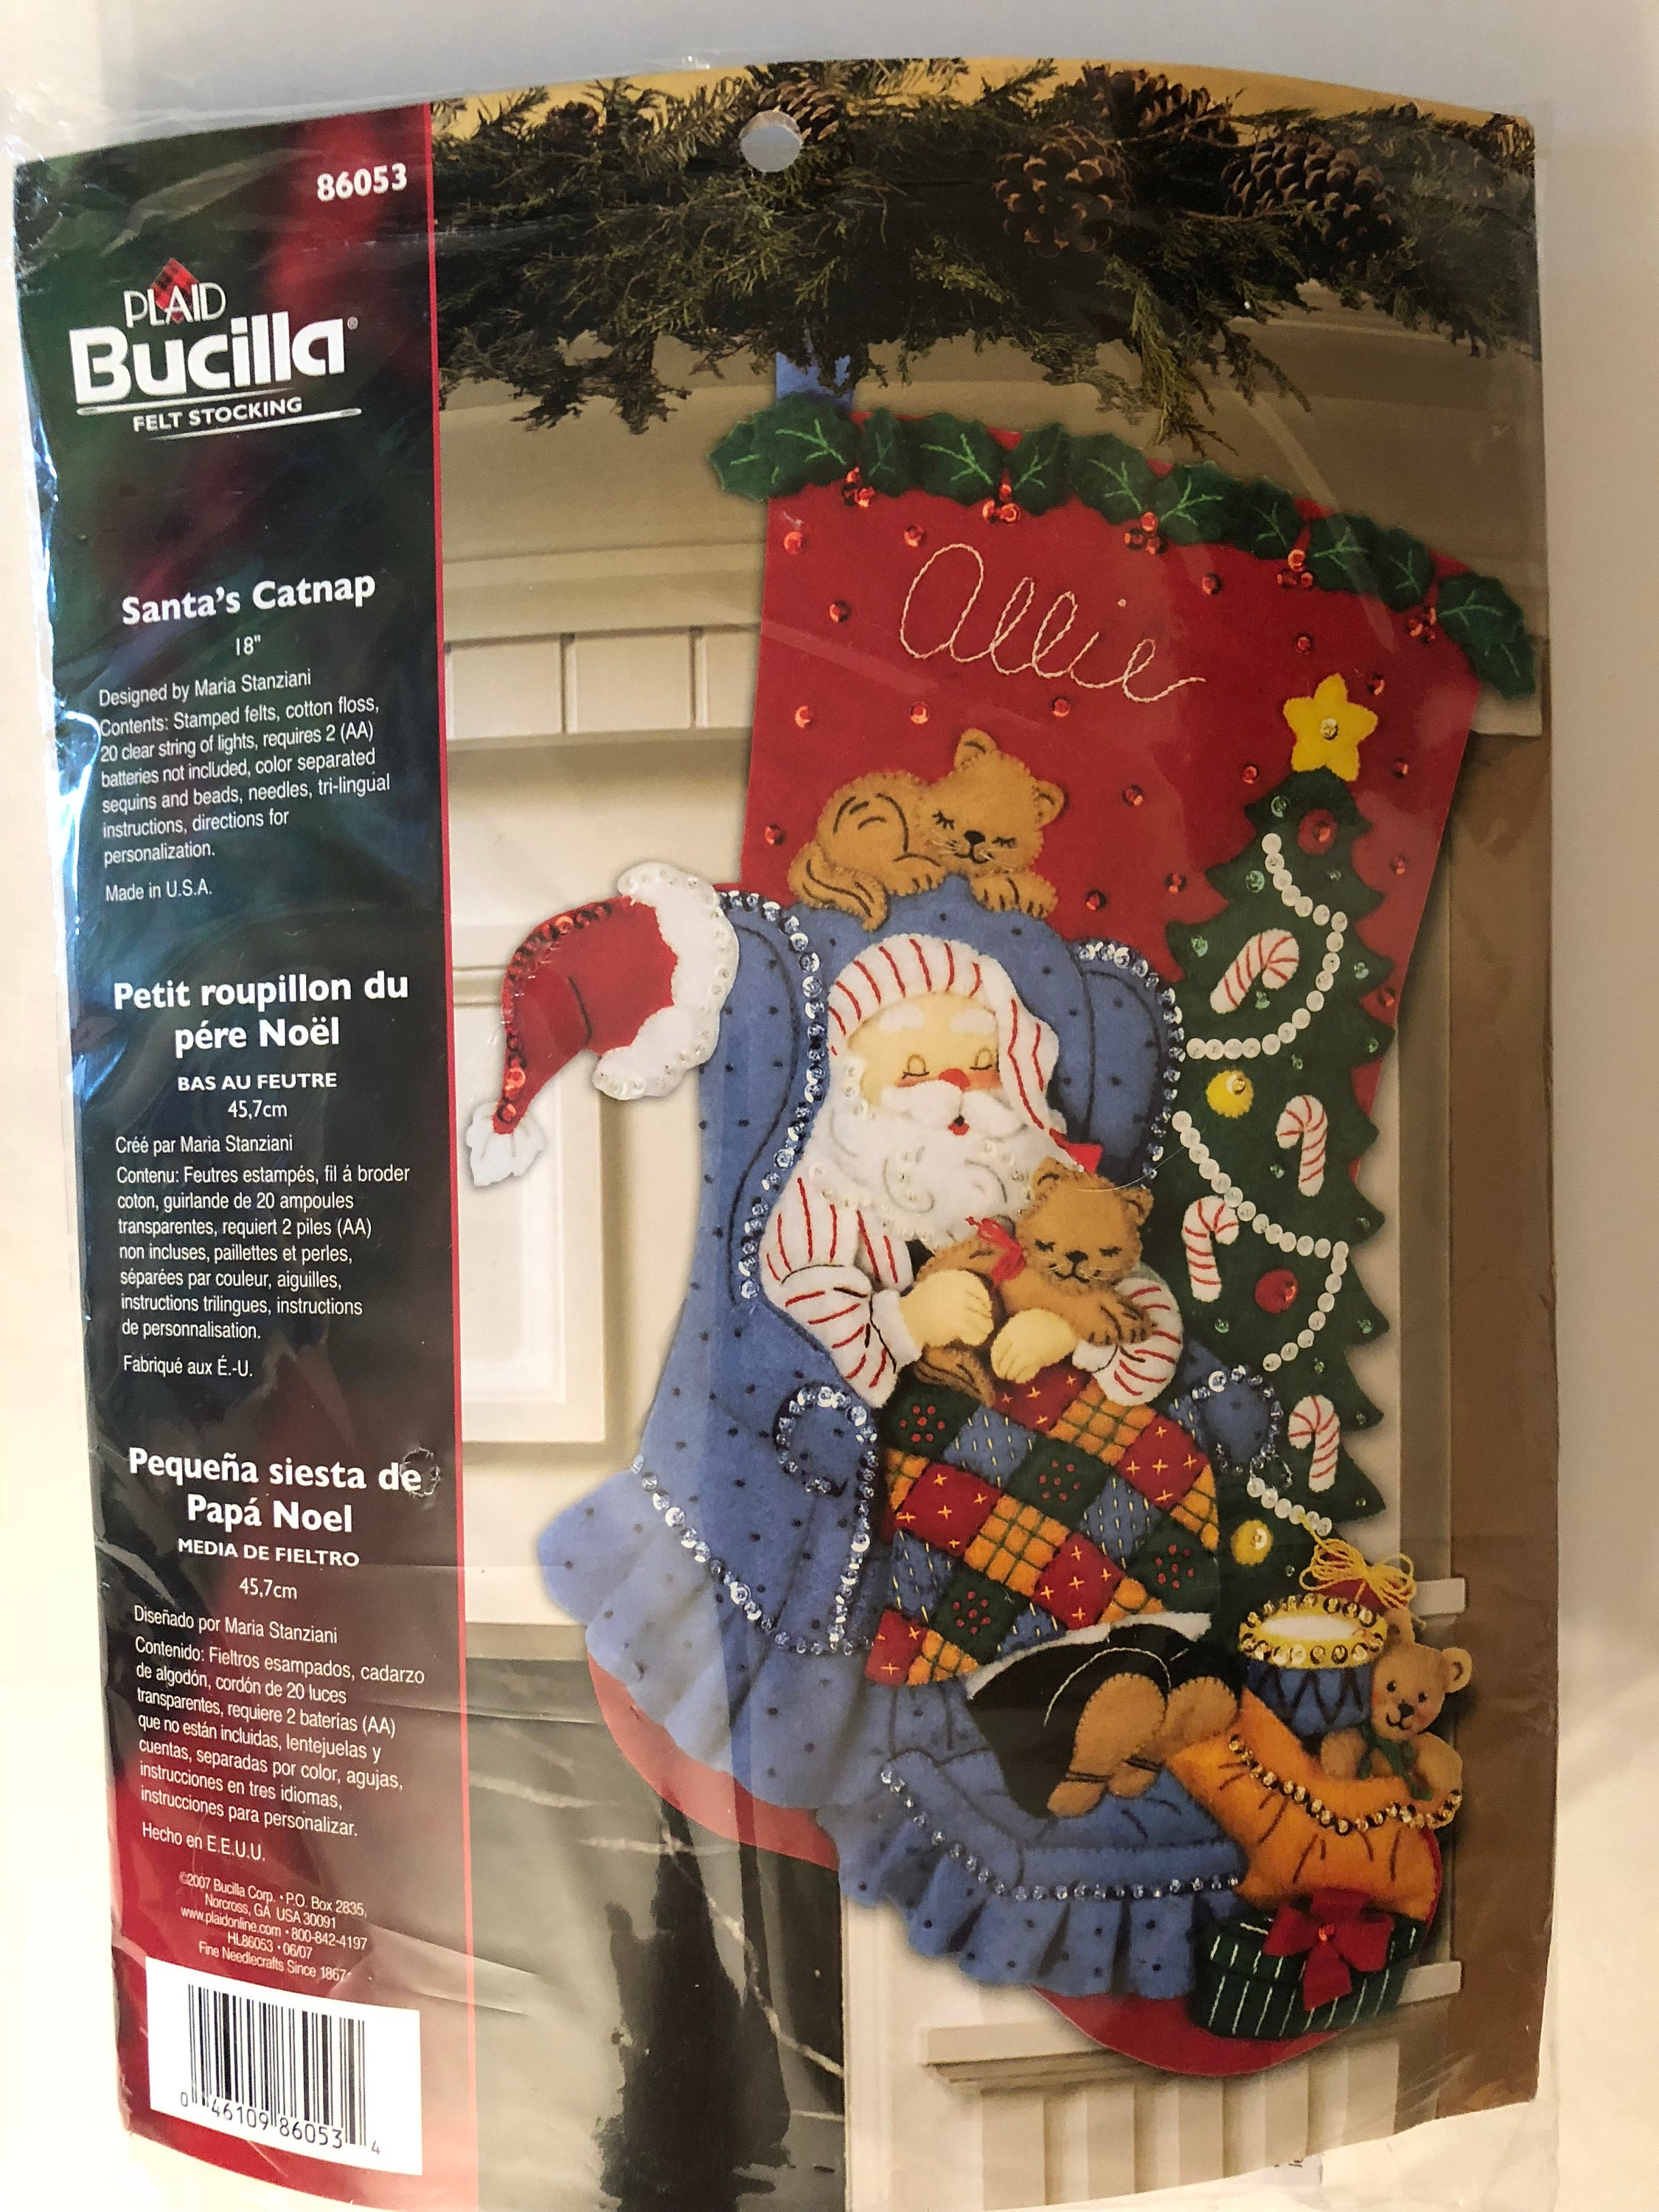 Bucilla Christmas Stocking Made To Order Personalized Etsy